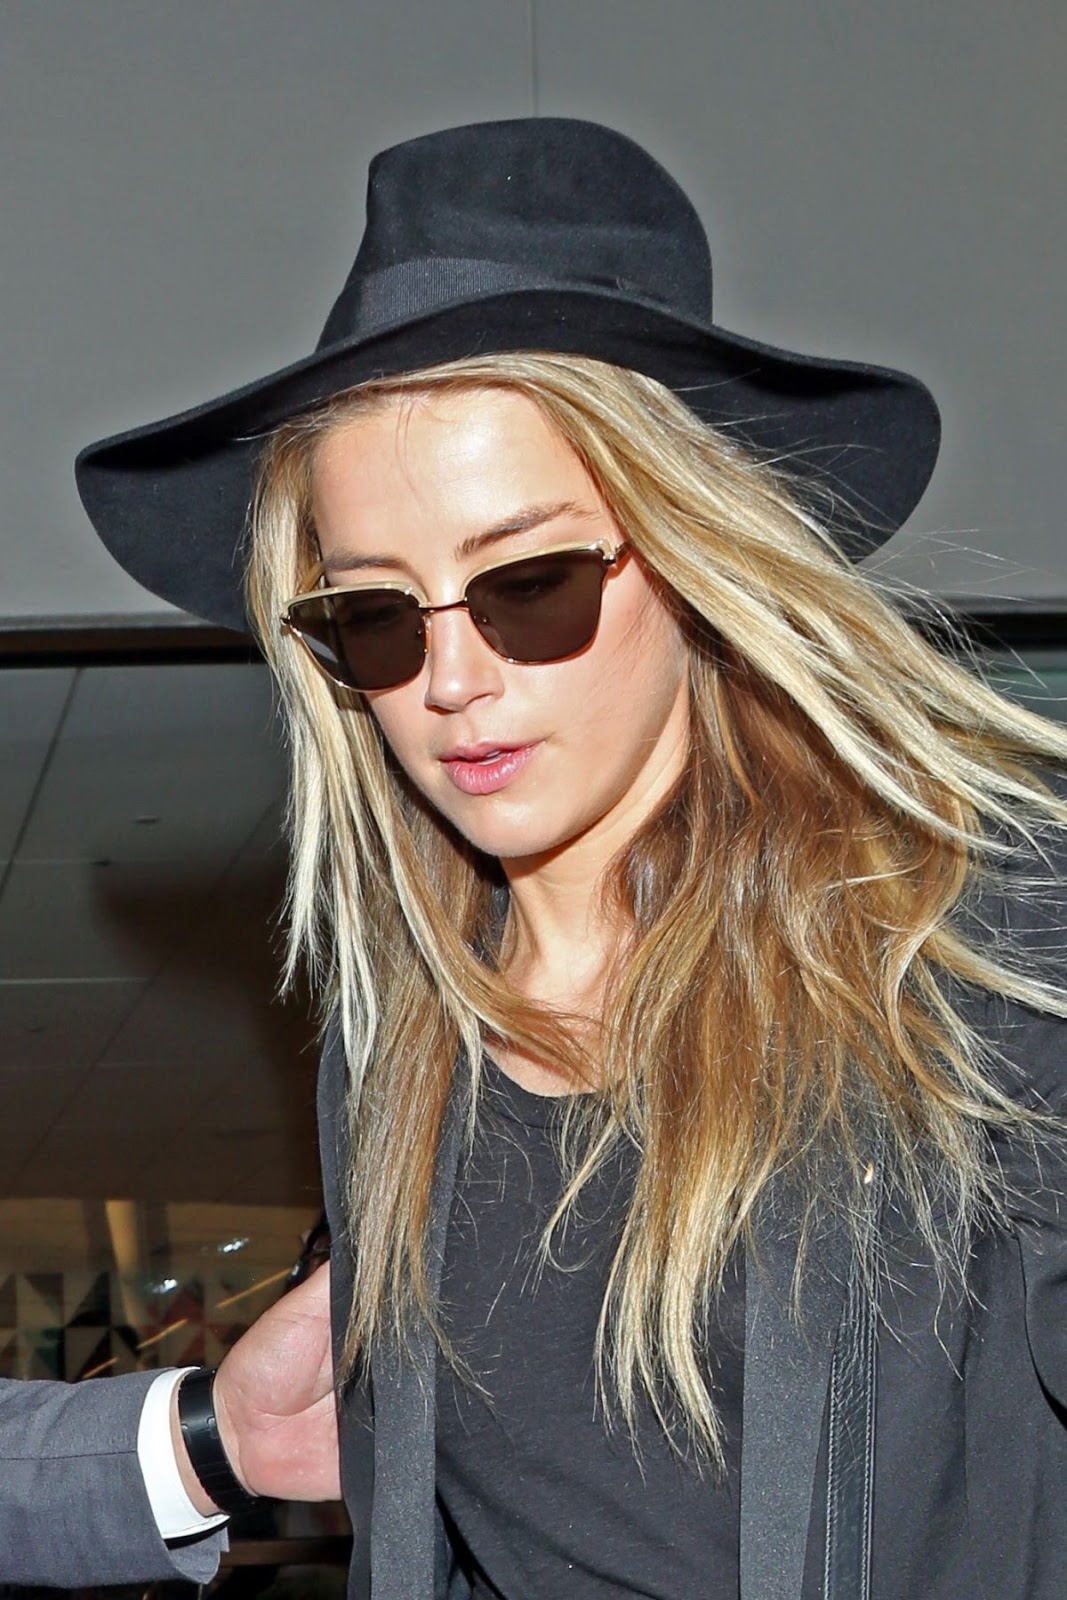 Amazing HQ Photos of Amber Heard at Lax Airport in Los Angeles 2016